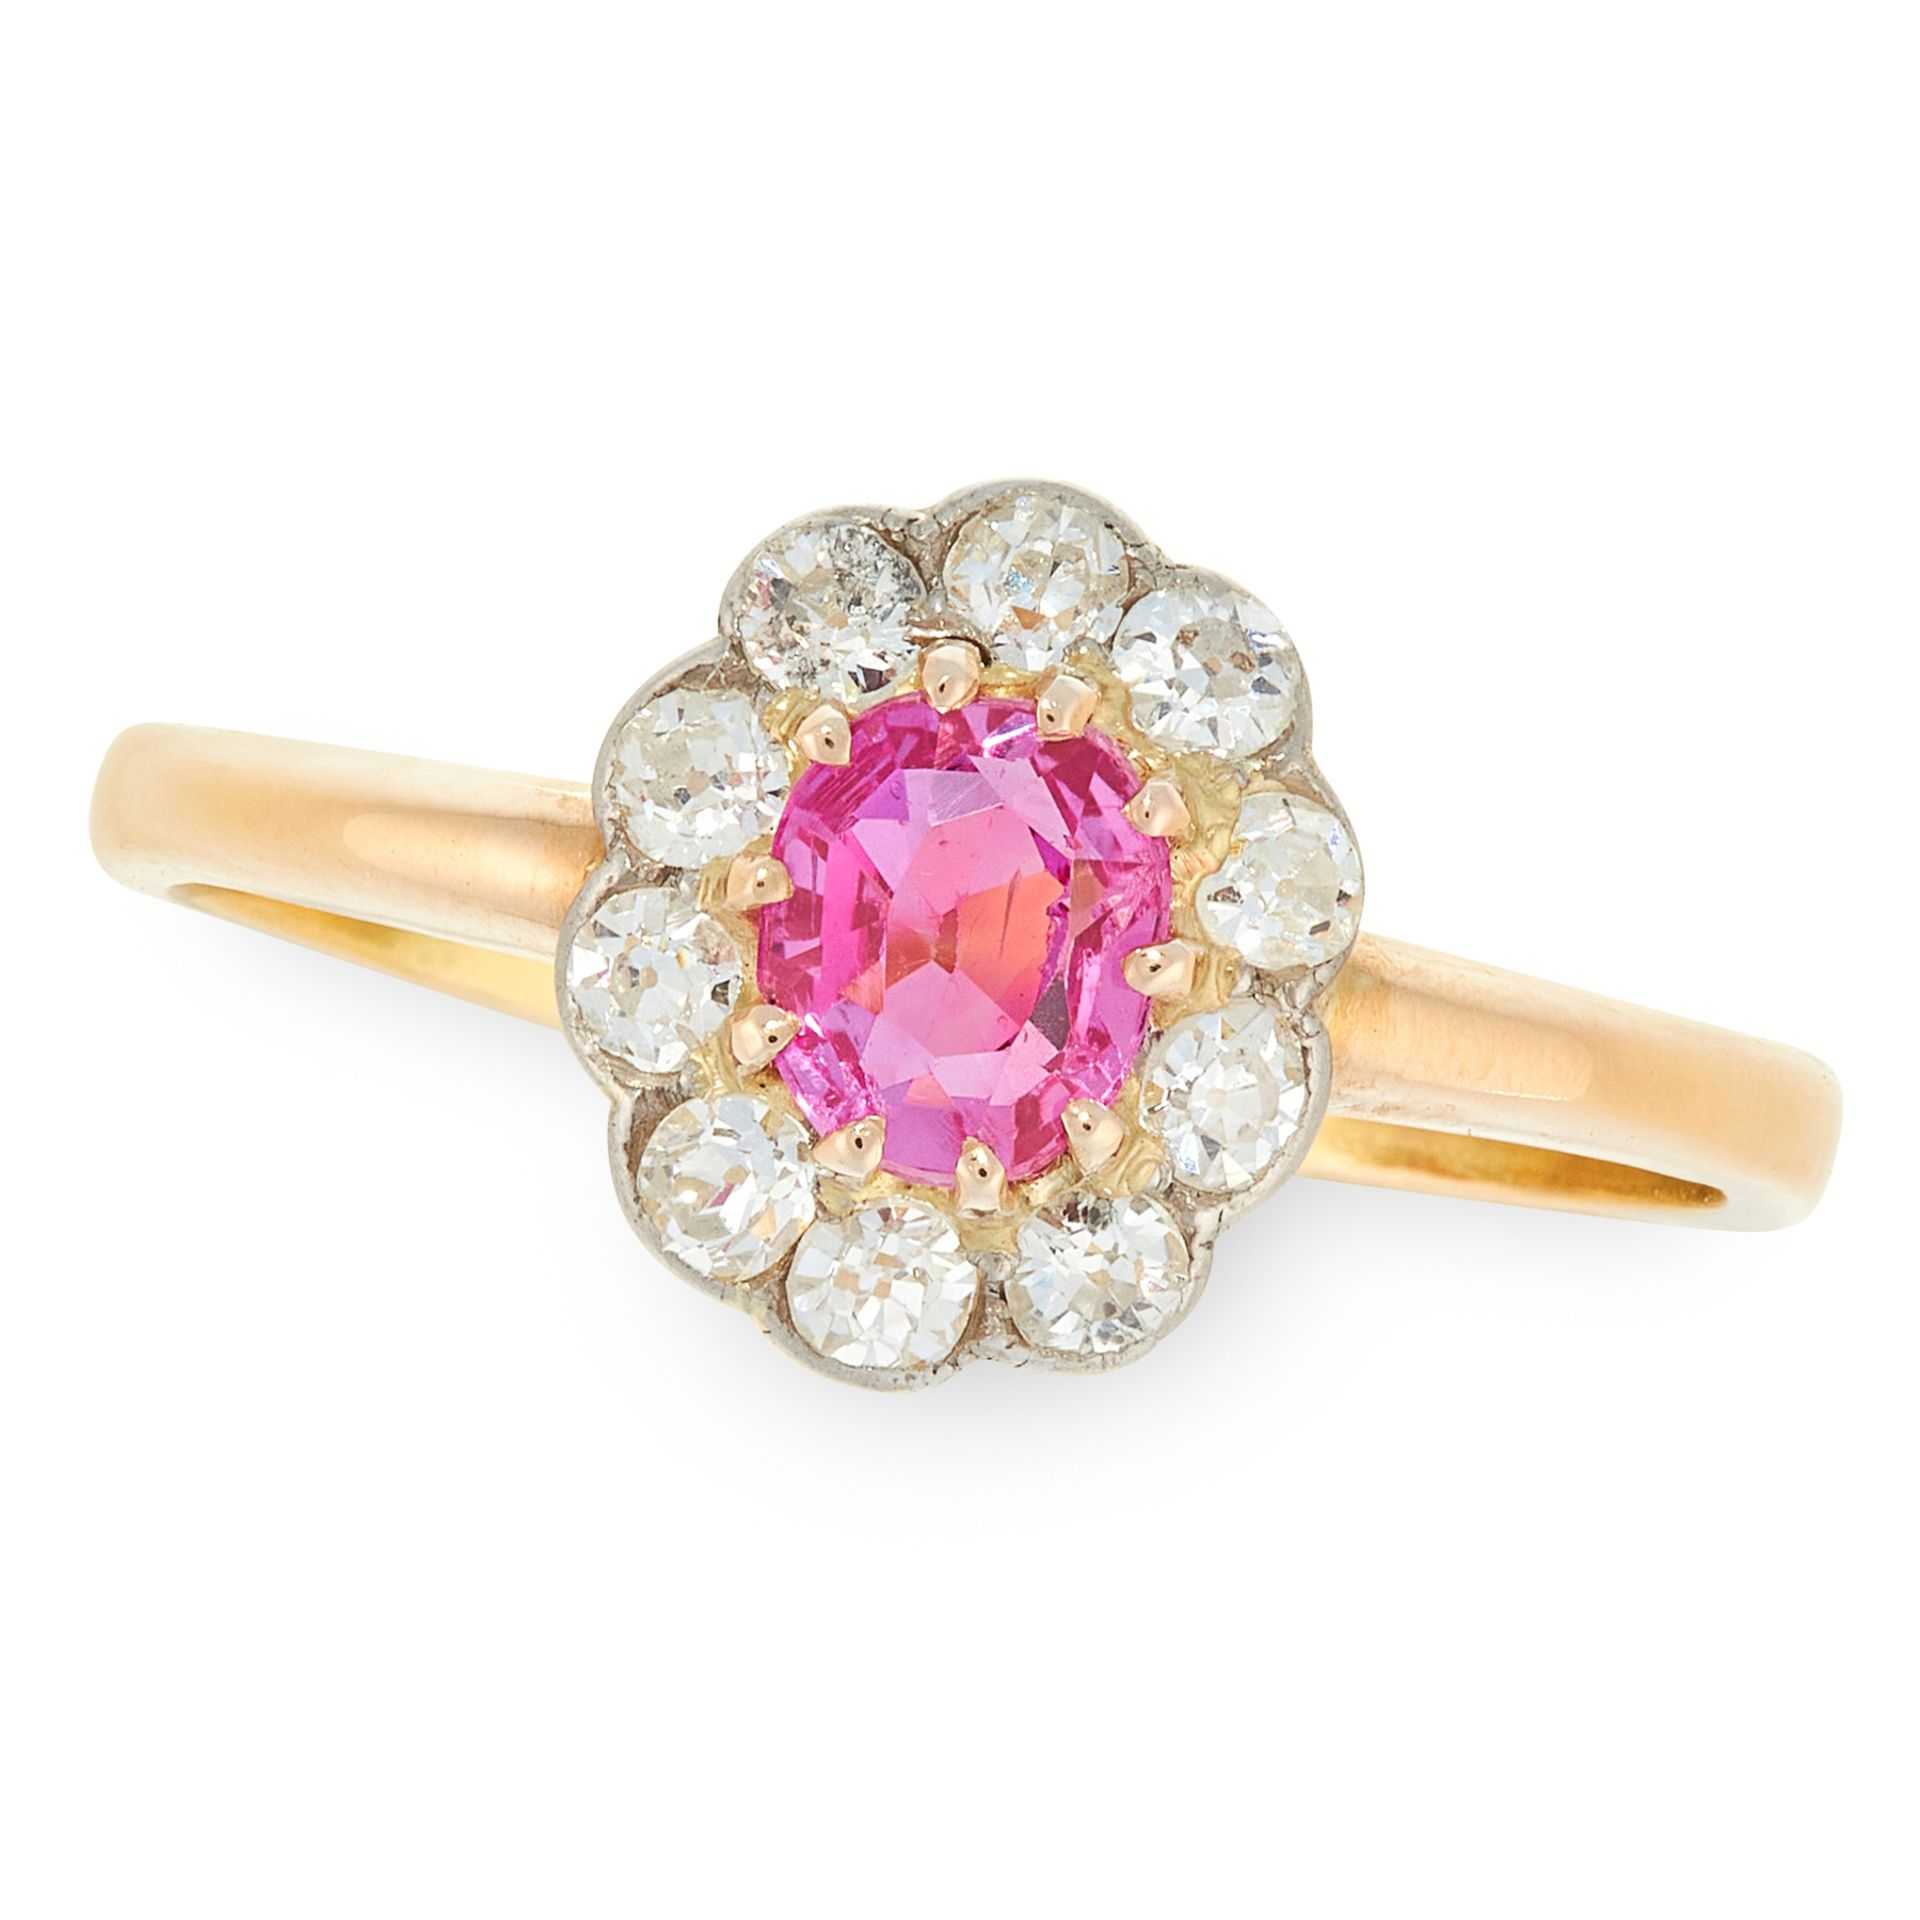 A RUBY AND DIAMOND CLUSTER in 18ct yellow gold and platinum, set with a oval cut ruby of 0.65 carats